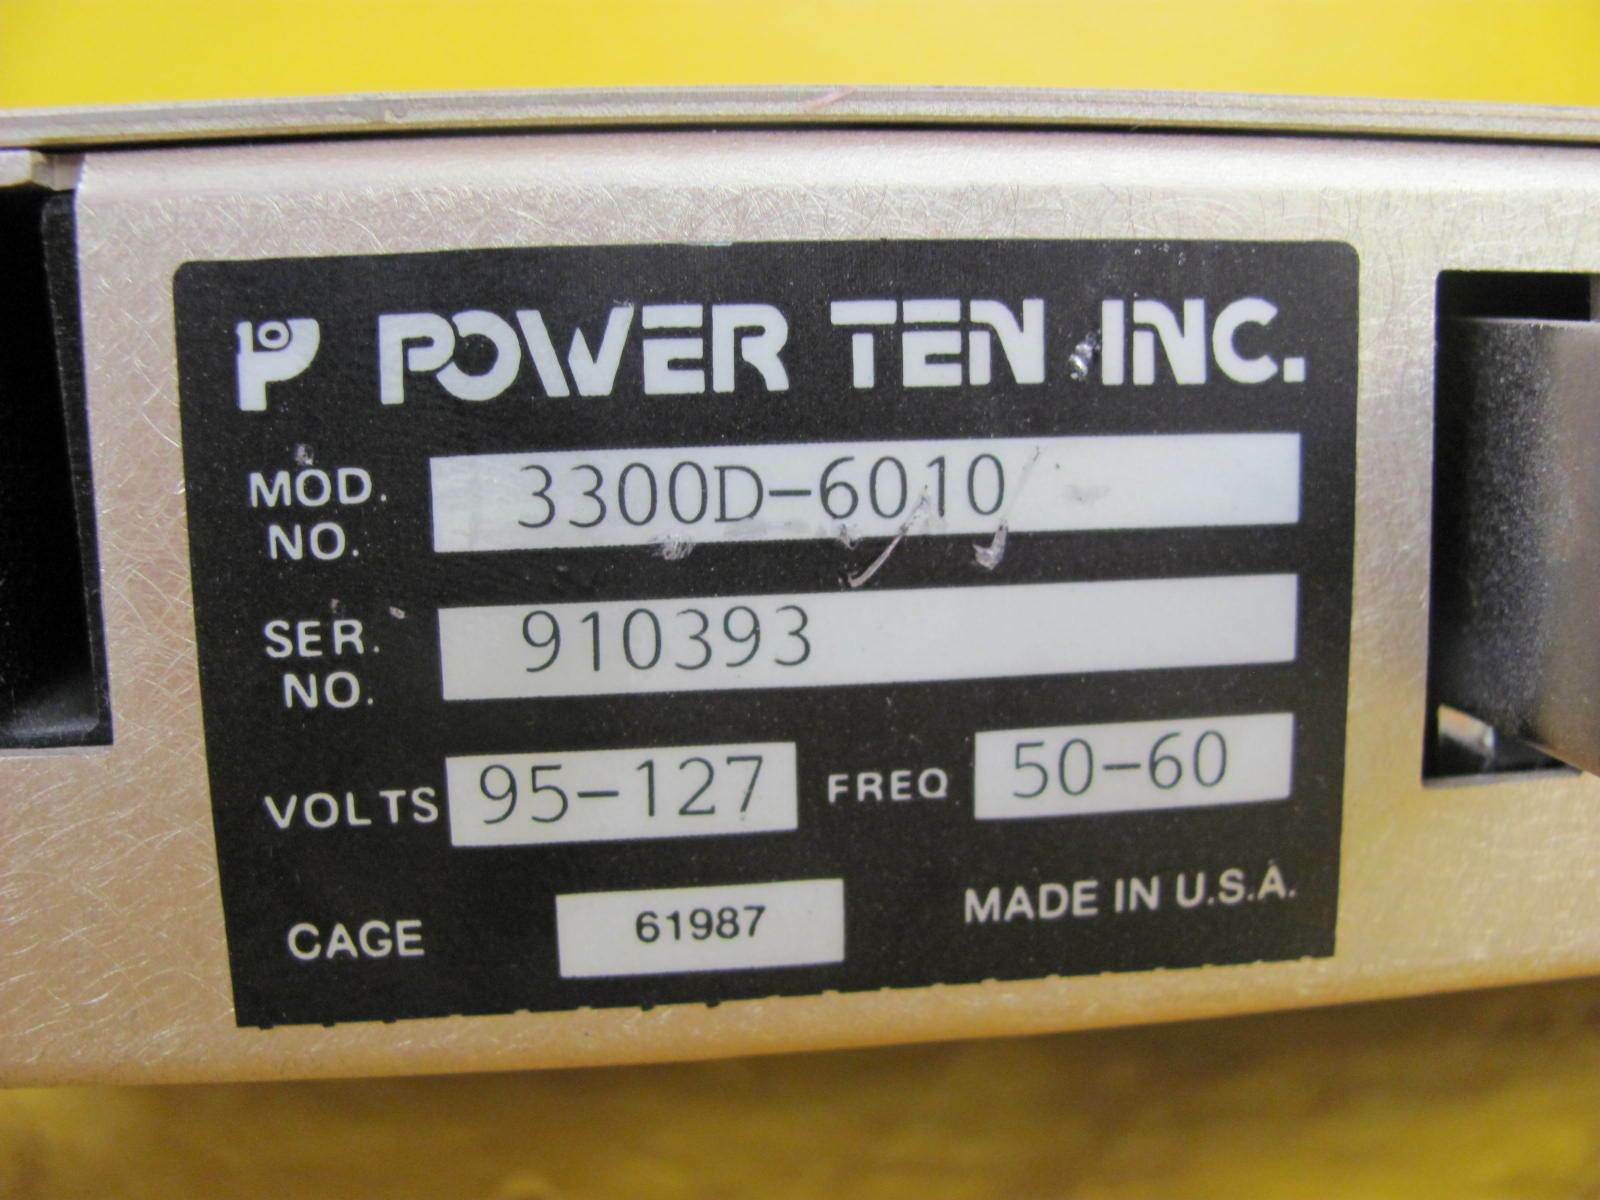 Power Ten 3300D-6010 DC Power Supply 3300 Series Used Working